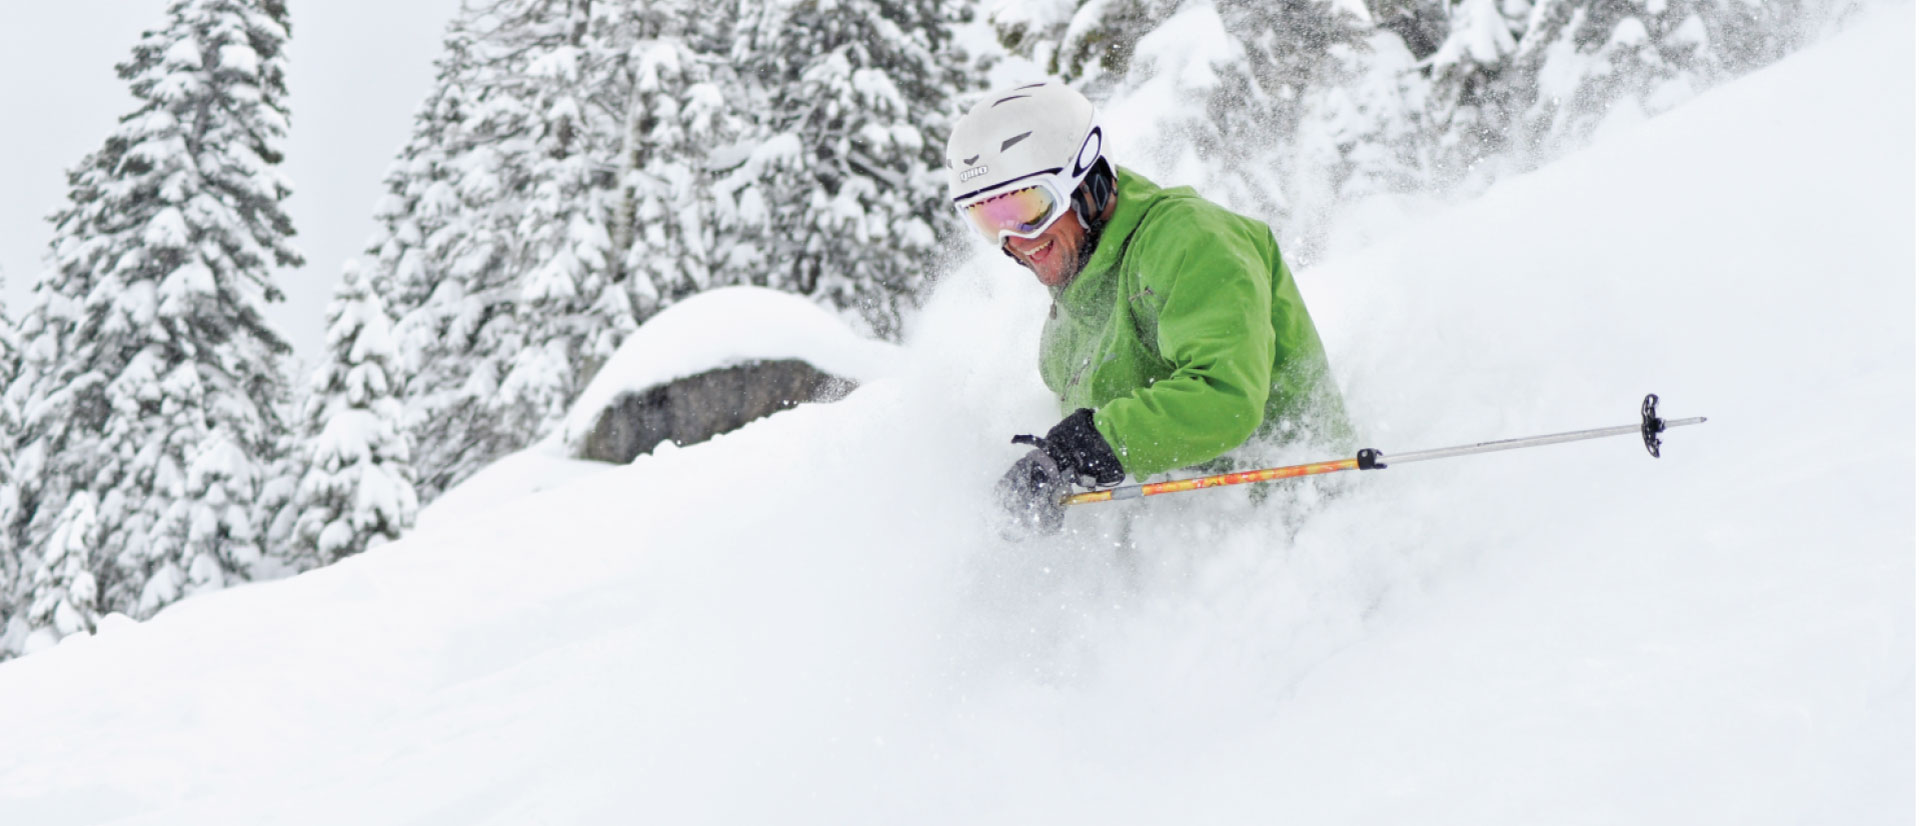 Dodge Ridge Ski Area Jobs - Employment Opportunities